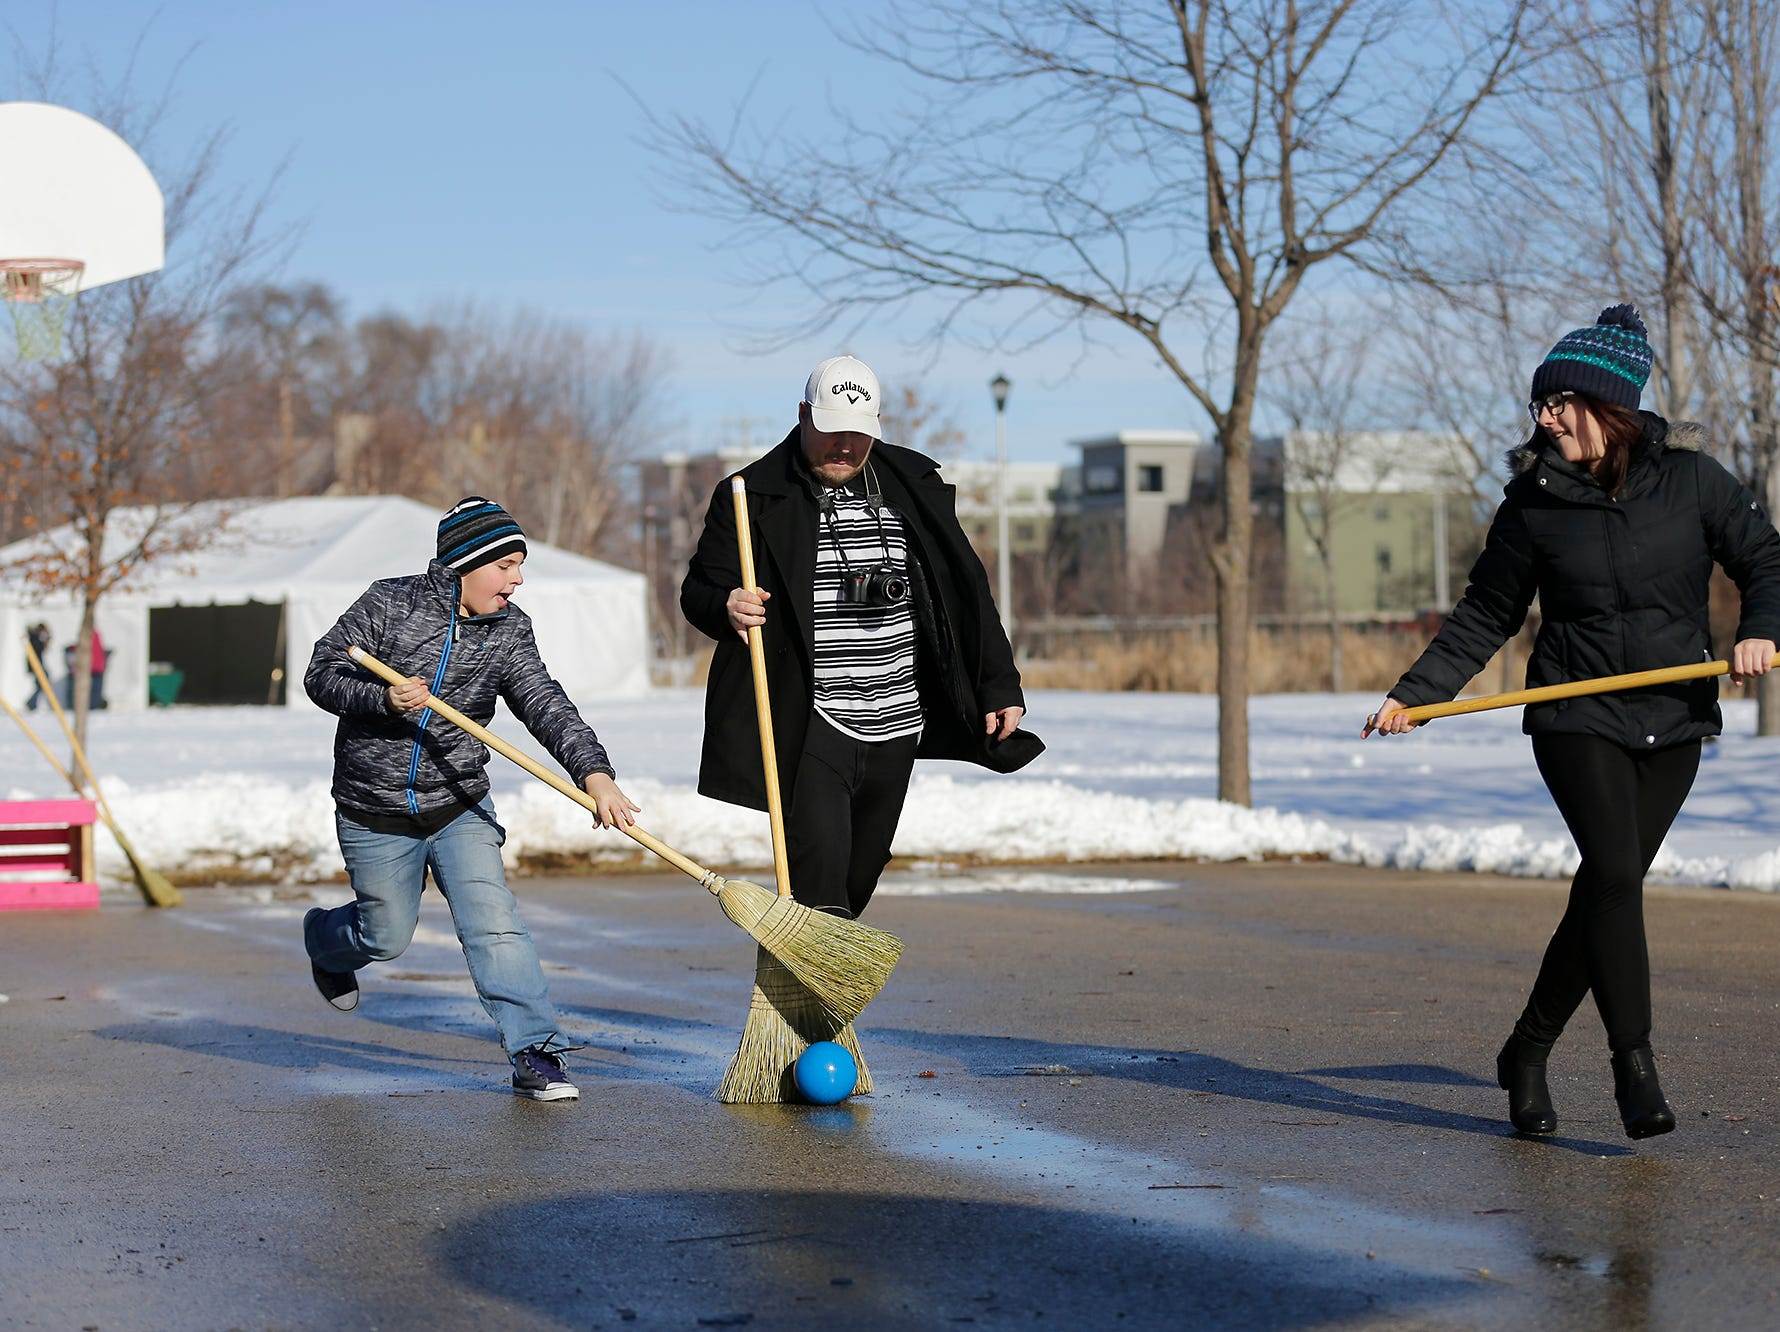 Dayton, Eric and Jaylyn Shady of Fond du Lac play broom ball at Winterfest Saturday, January 5, 2019 at Hamilton park in Fond du Lac, Wisconsin. Doug Raflik/USA TODAY NETWORK-Wisconsin